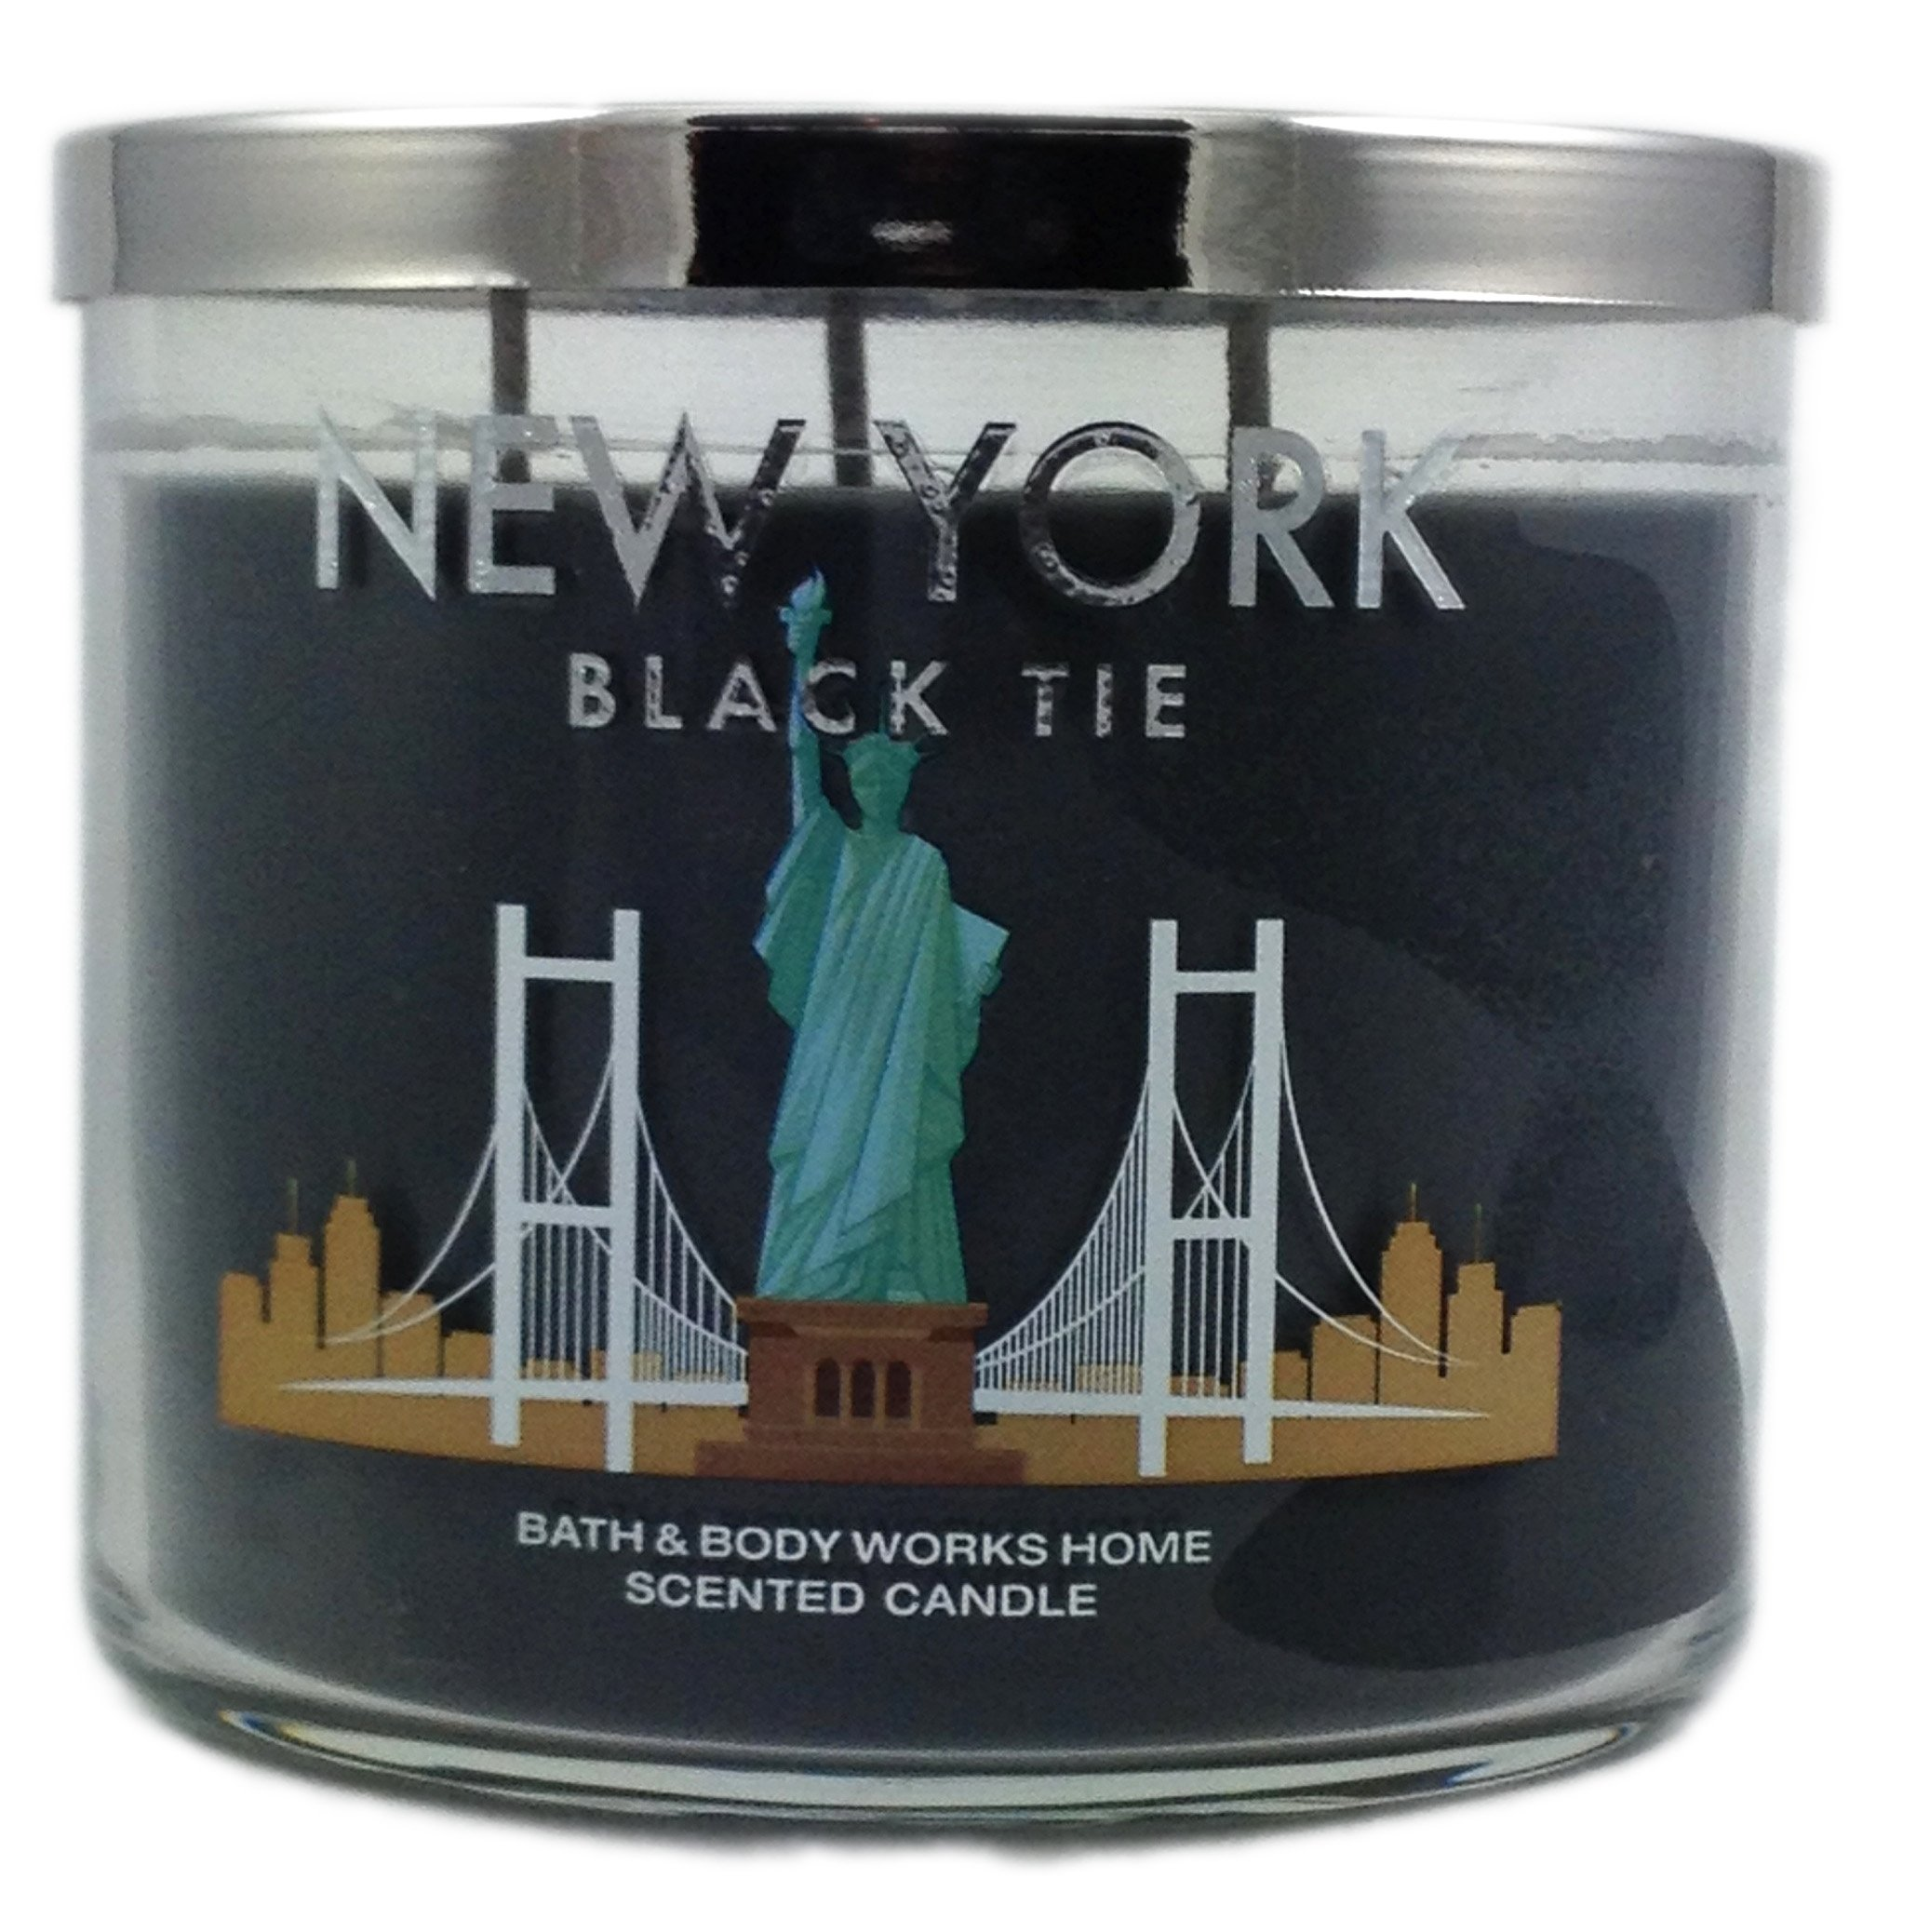 Bath & Body Works Candle 3 Wick 14.5 Ounce 2015 New York Black Tie